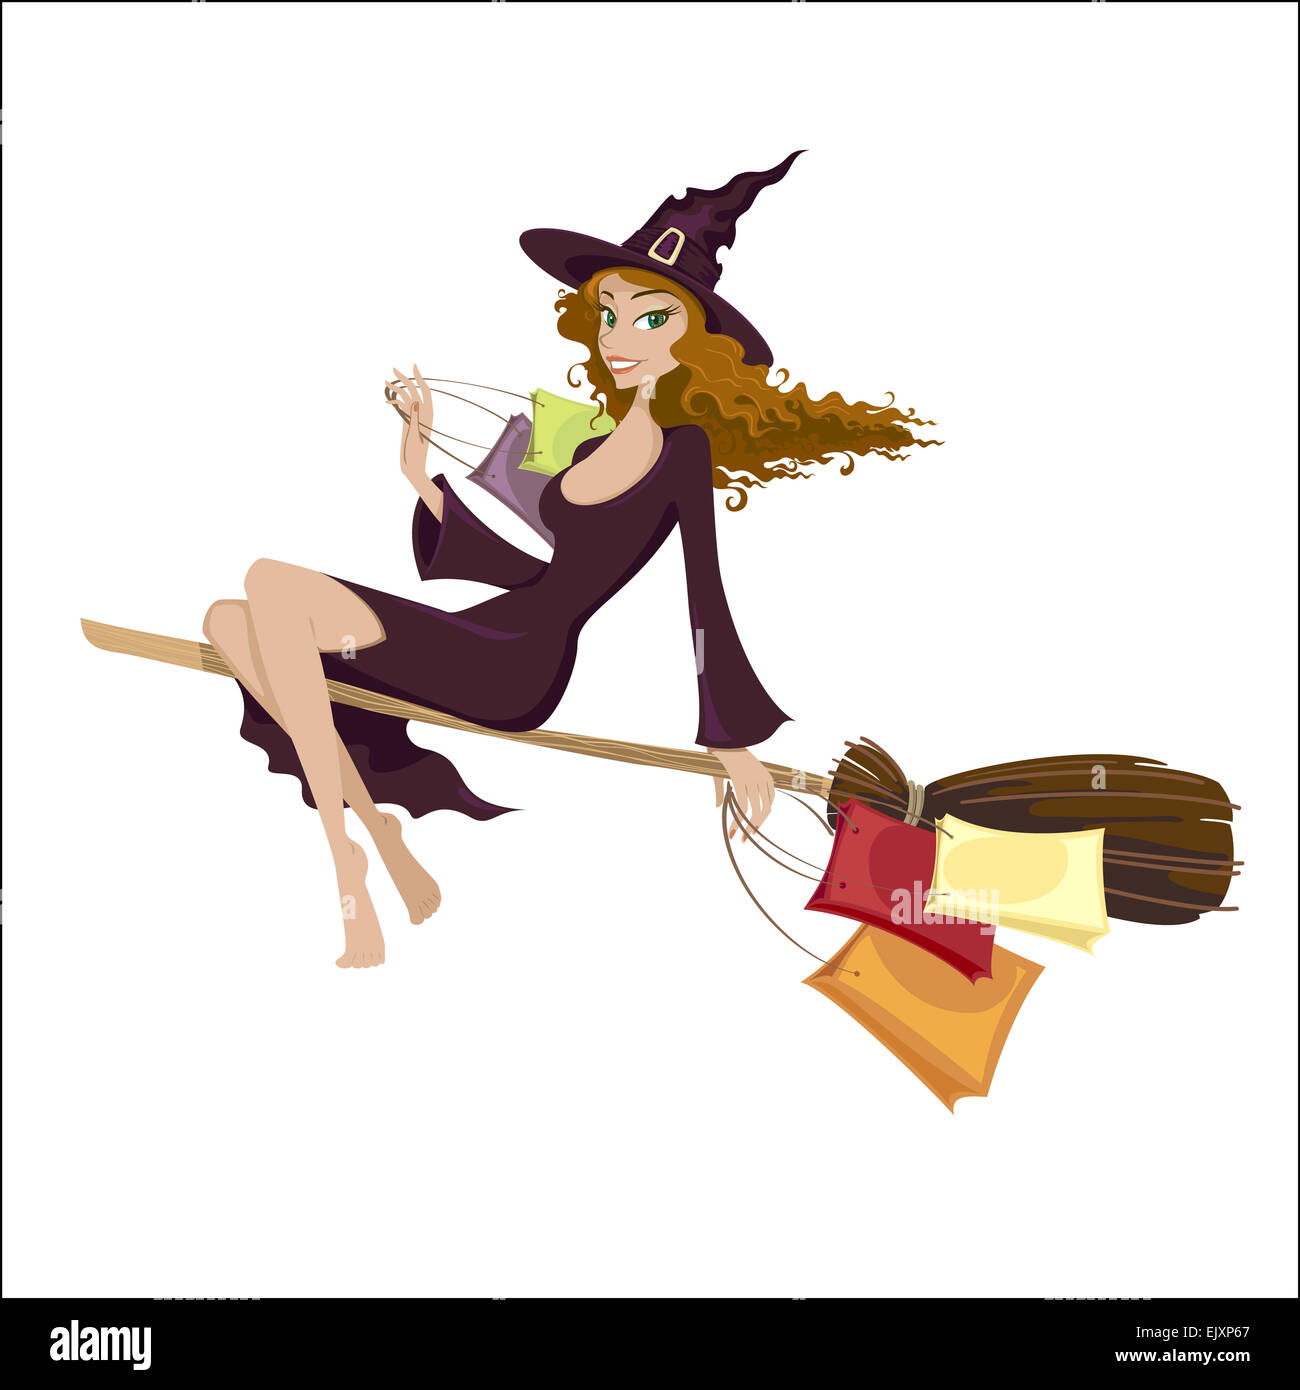 halloween witch flying on broomstick stockfotos halloween witch flying on broomstick bilder. Black Bedroom Furniture Sets. Home Design Ideas